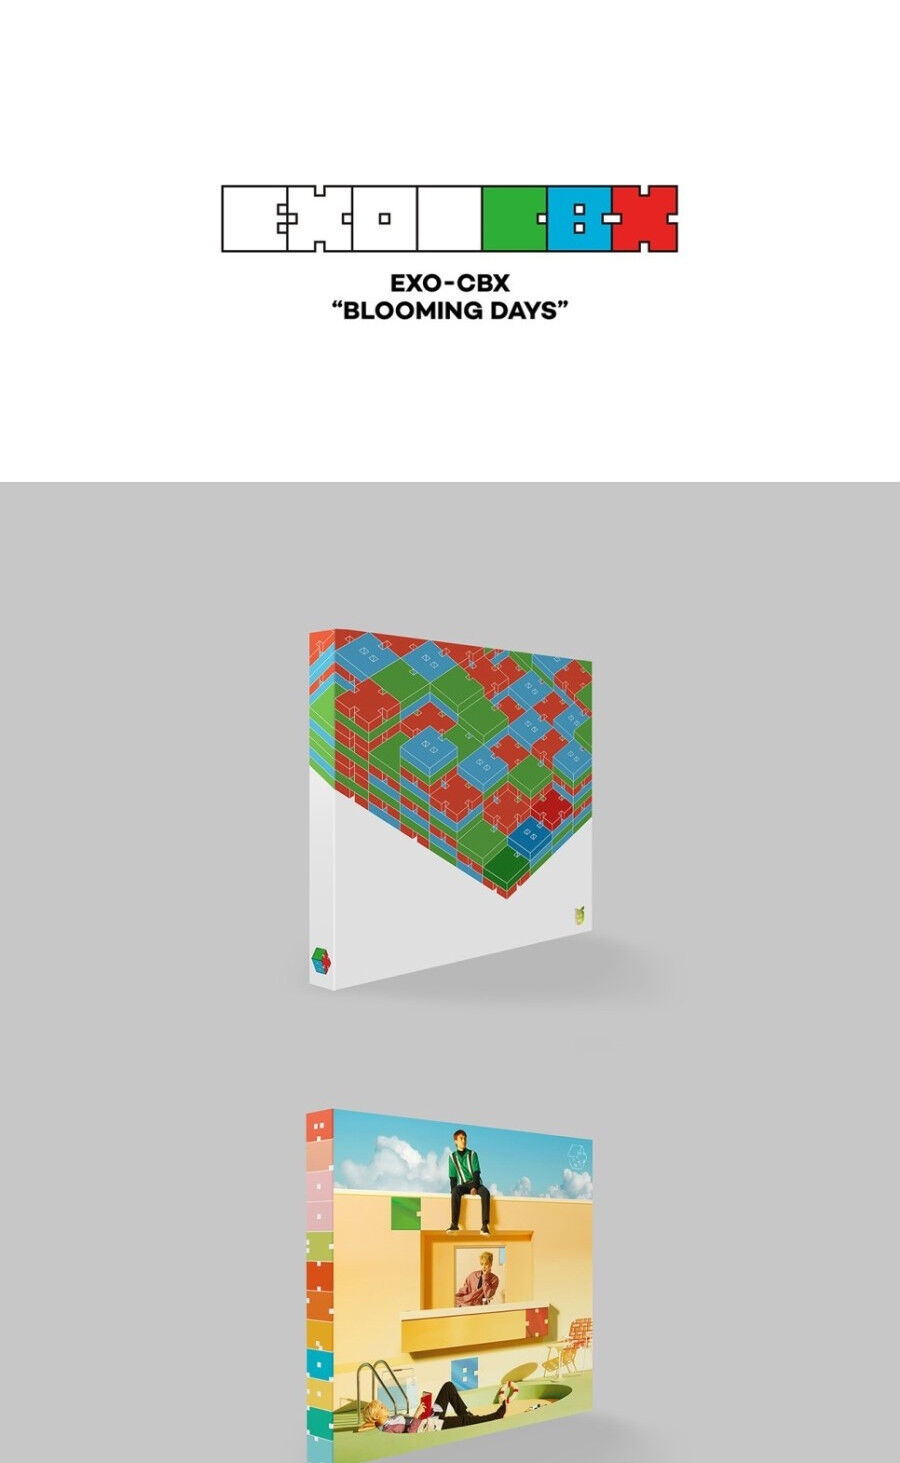 Exo Cbx Blooming Days 2nd Mini Album Cd Poster Pbook Card Sticker Kode 05 07 Lazy